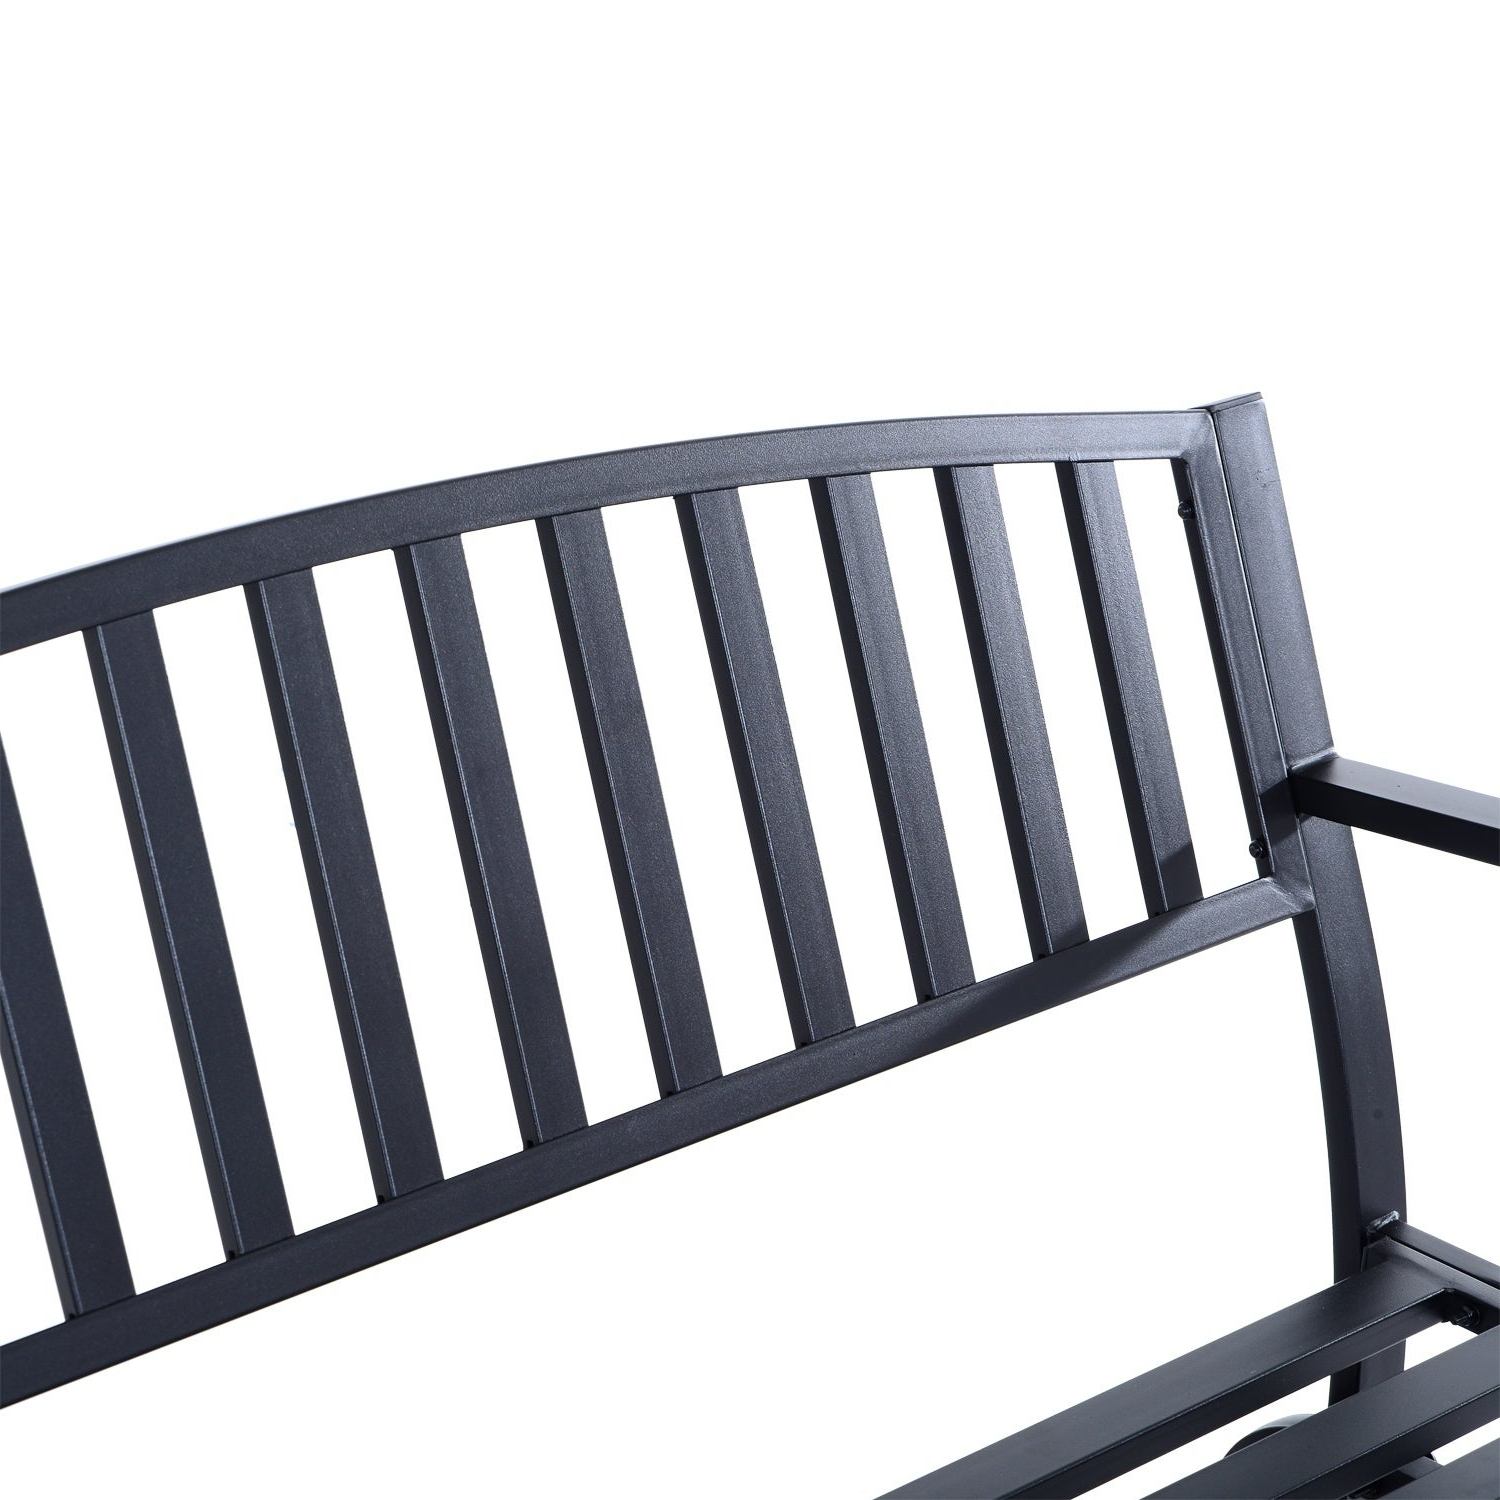 Well Known Black Steel Patio Swing Glider Benches Powder Coated Regarding Outsunny 50 Inch Outdoor Steel Patio Swing Glider Bench – Black (View 28 of 30)